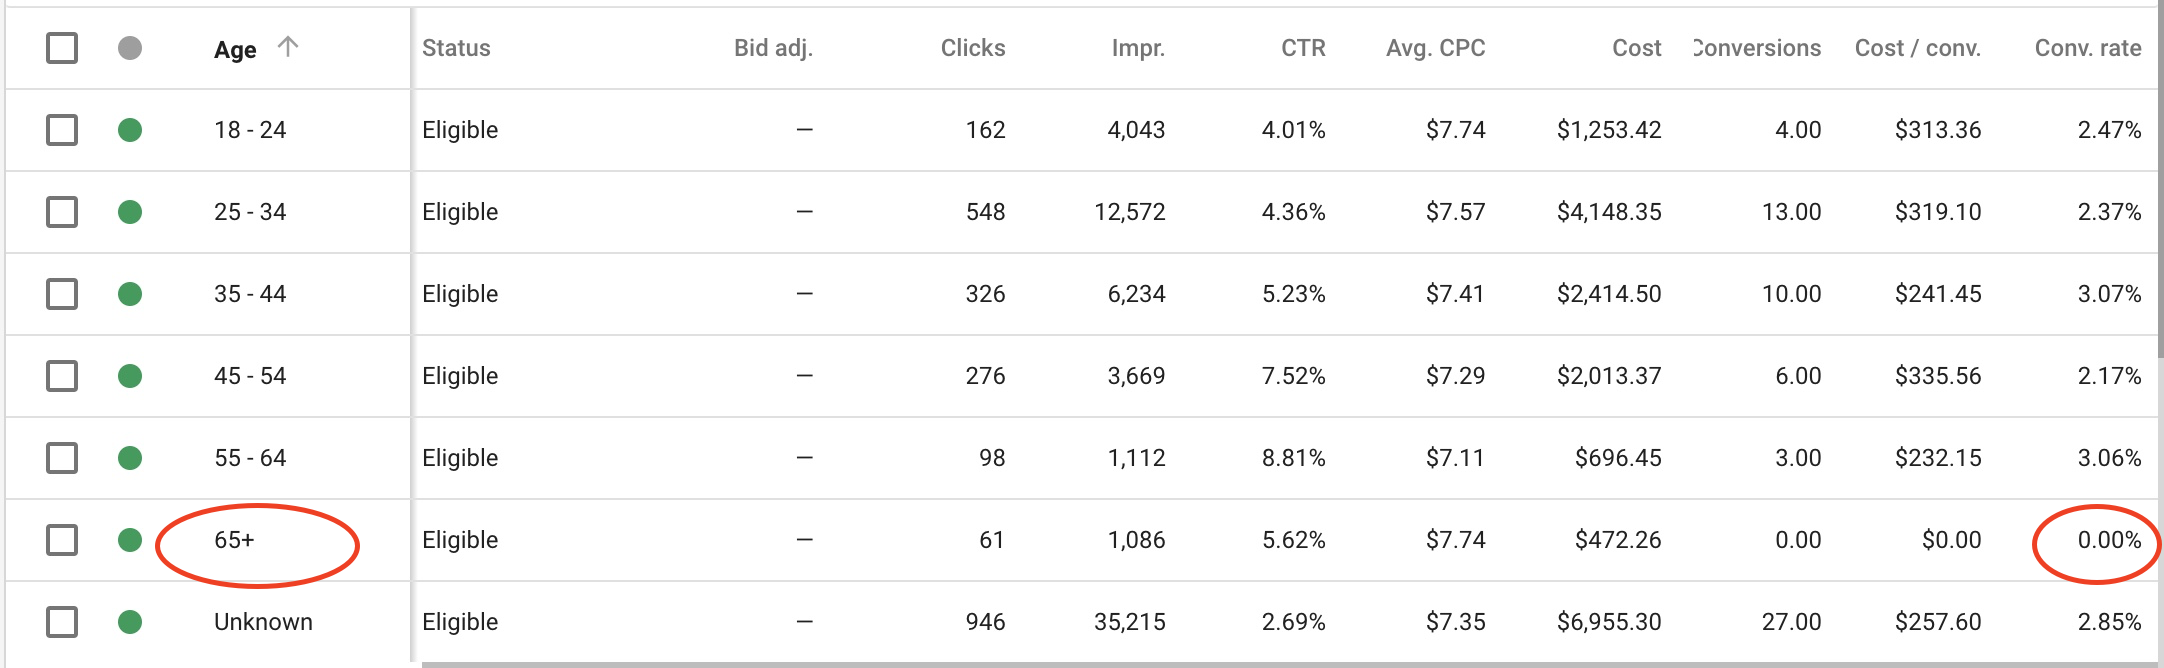 Optimize Your PPC Account - example 1